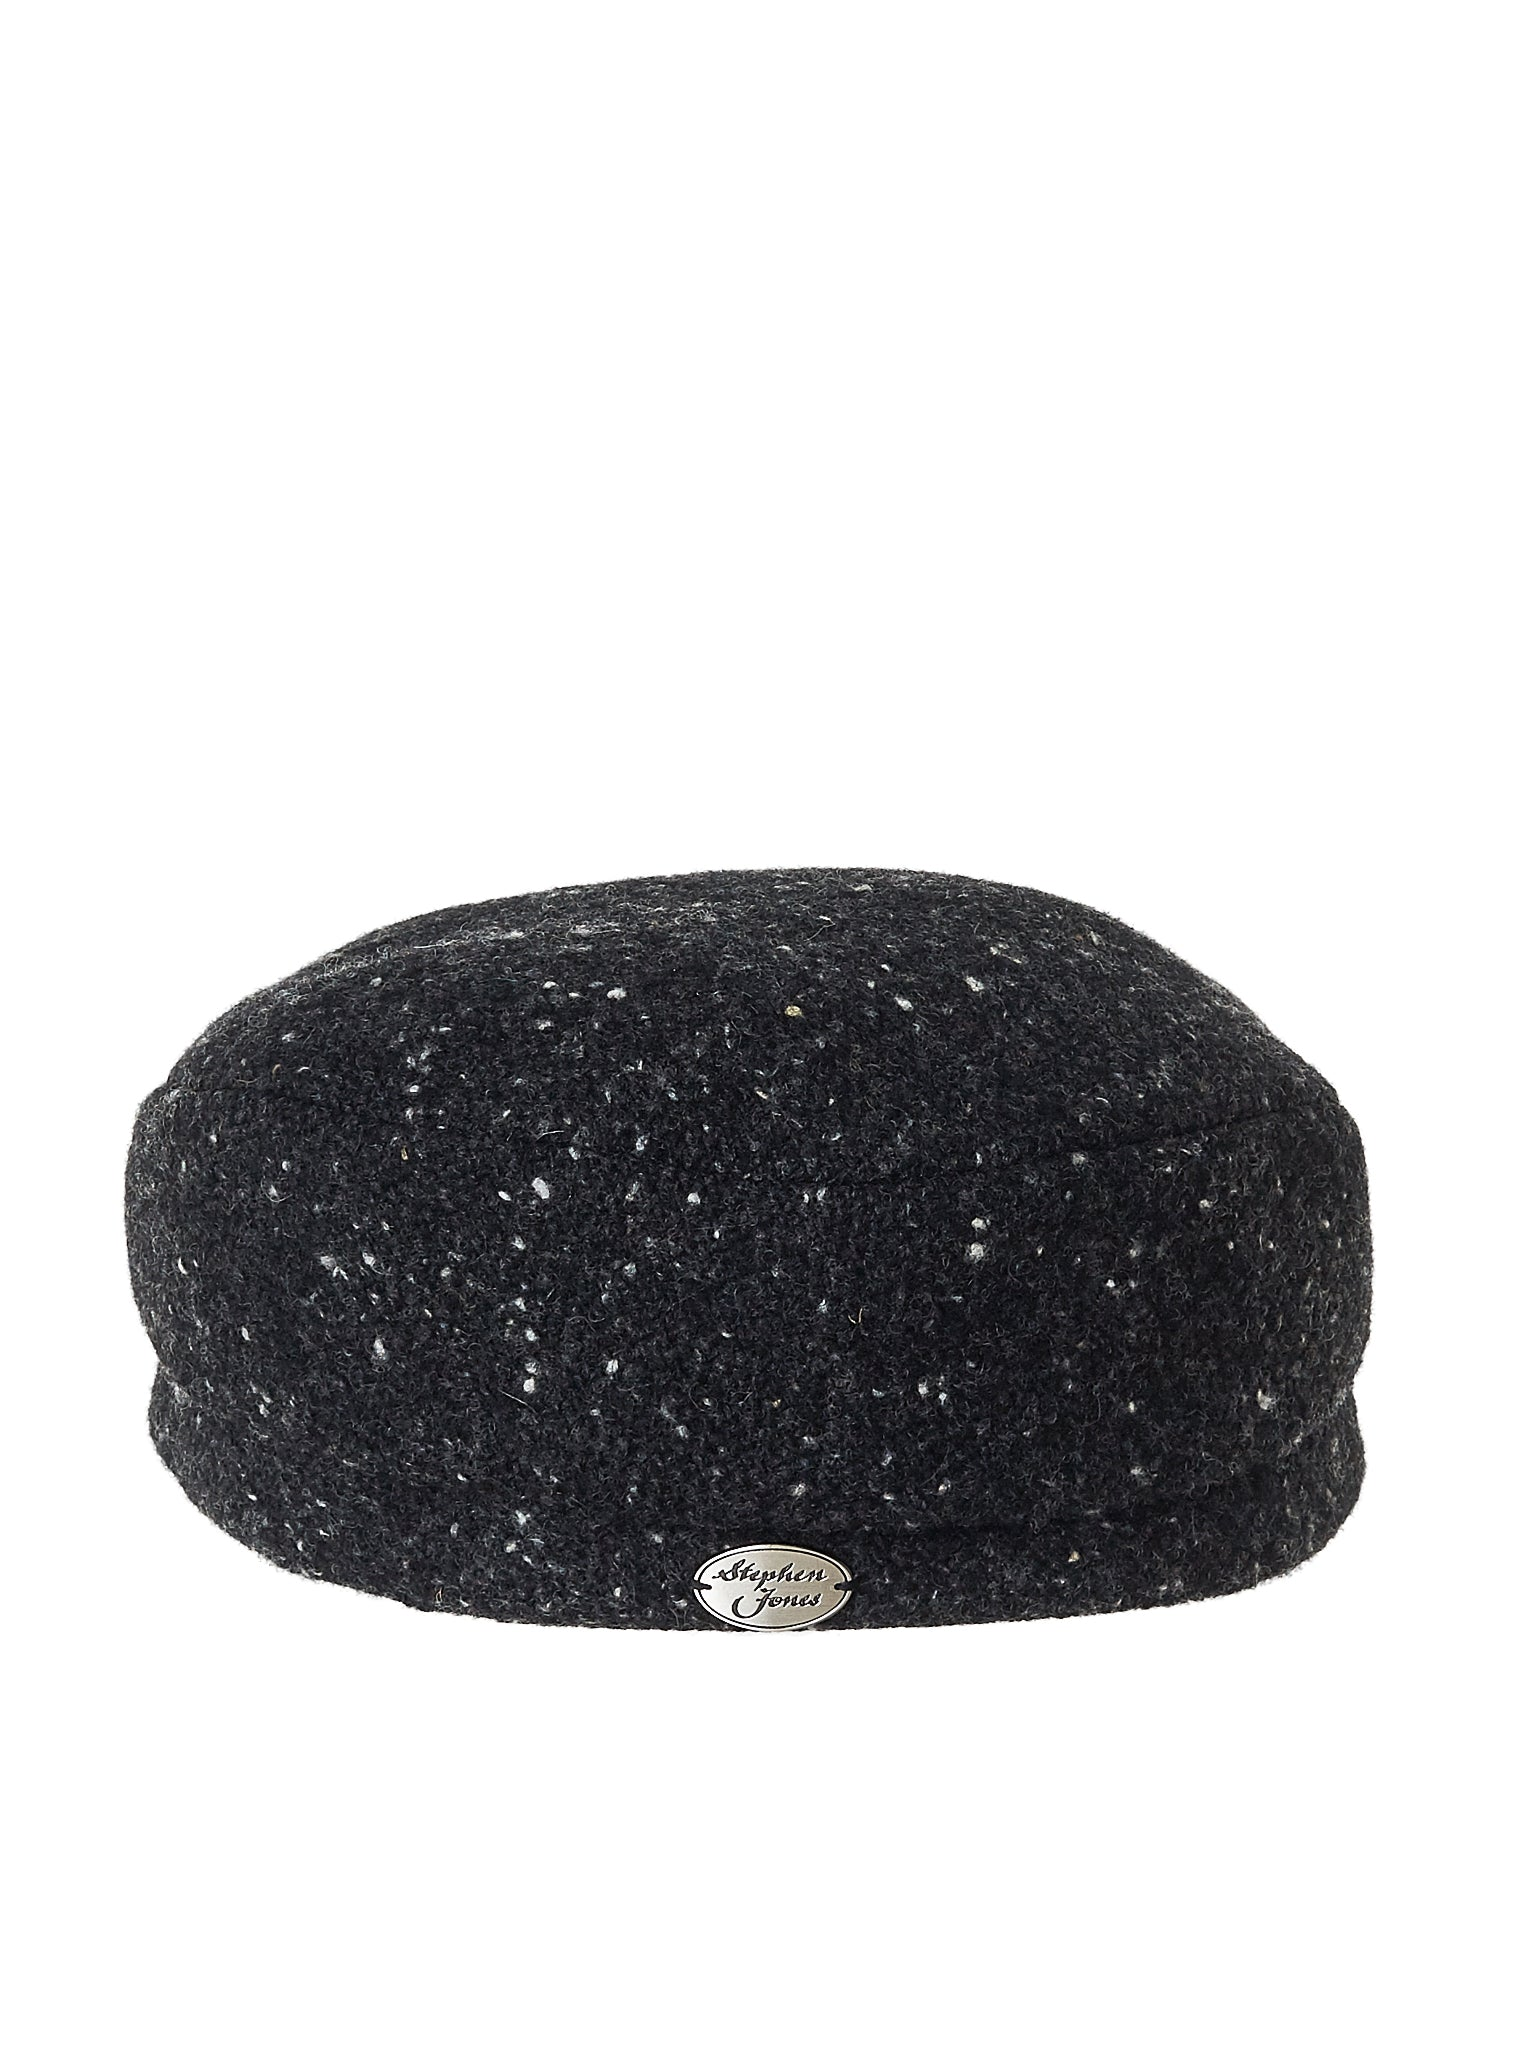 'Malcolm' Speckled Cap (305-MALCOLM-GREY)